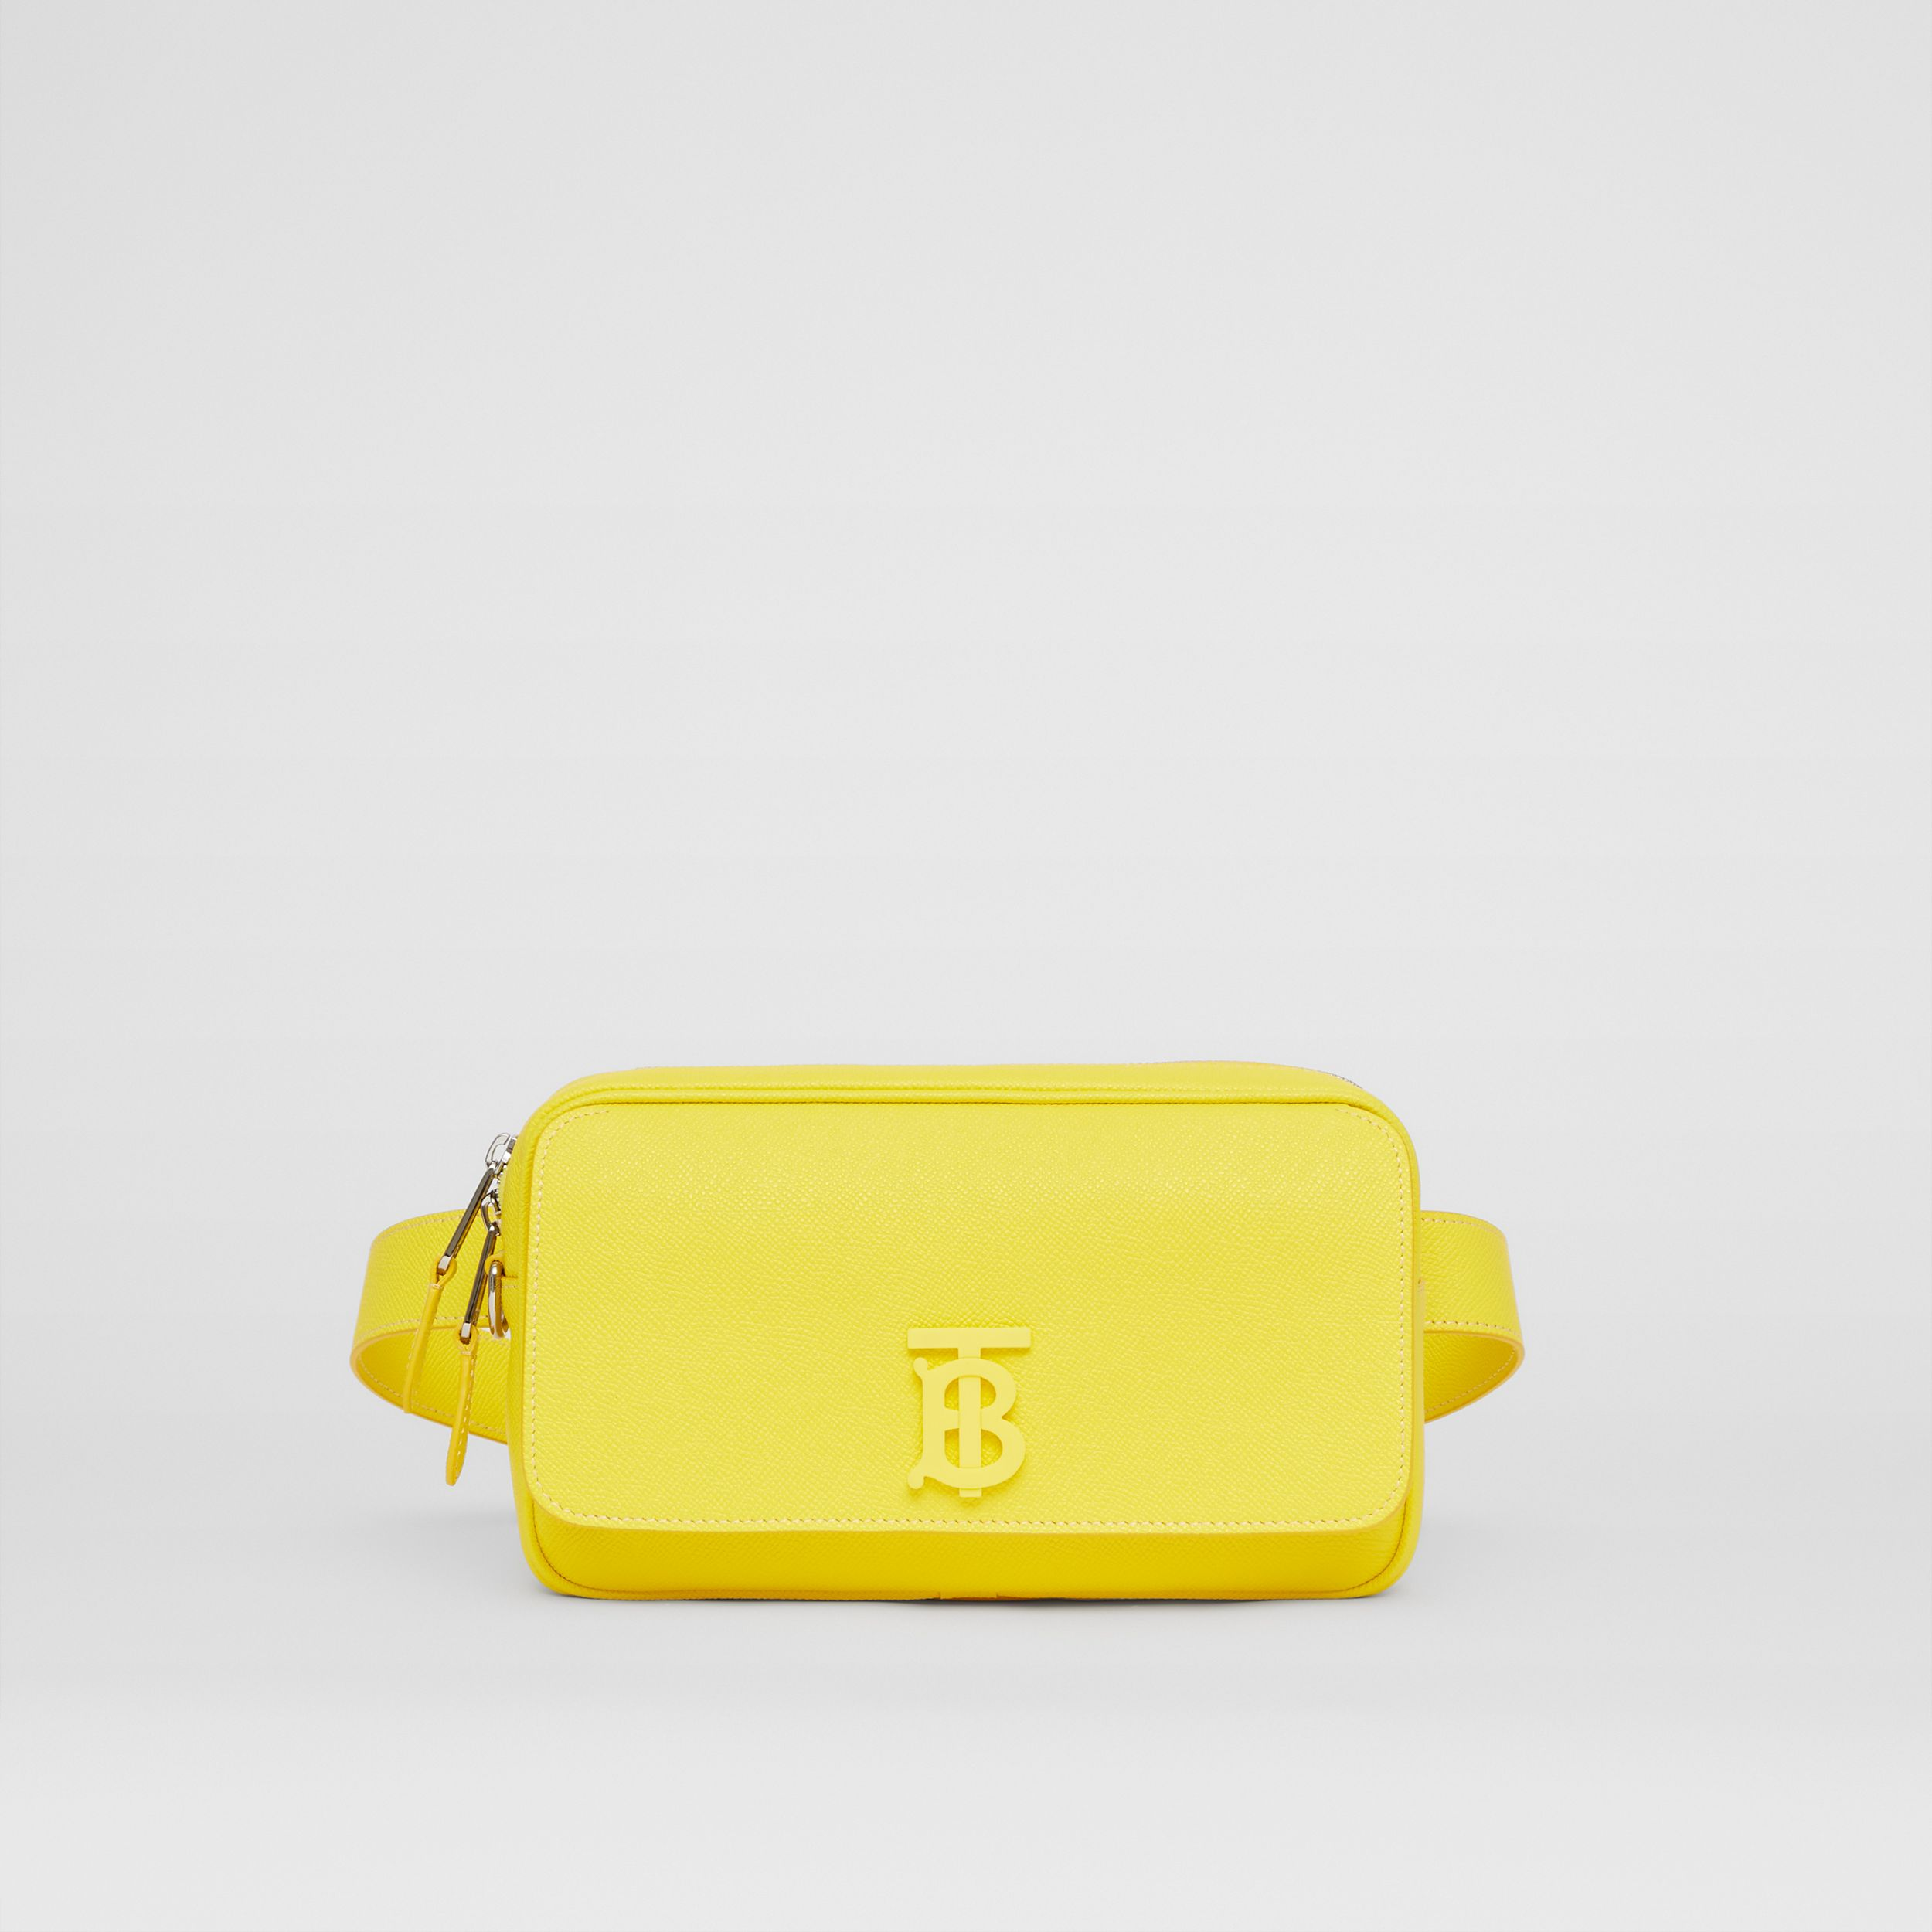 Monogram Motif Grainy Leather Bum Bag in Marigold Yellow - Men | Burberry - 1